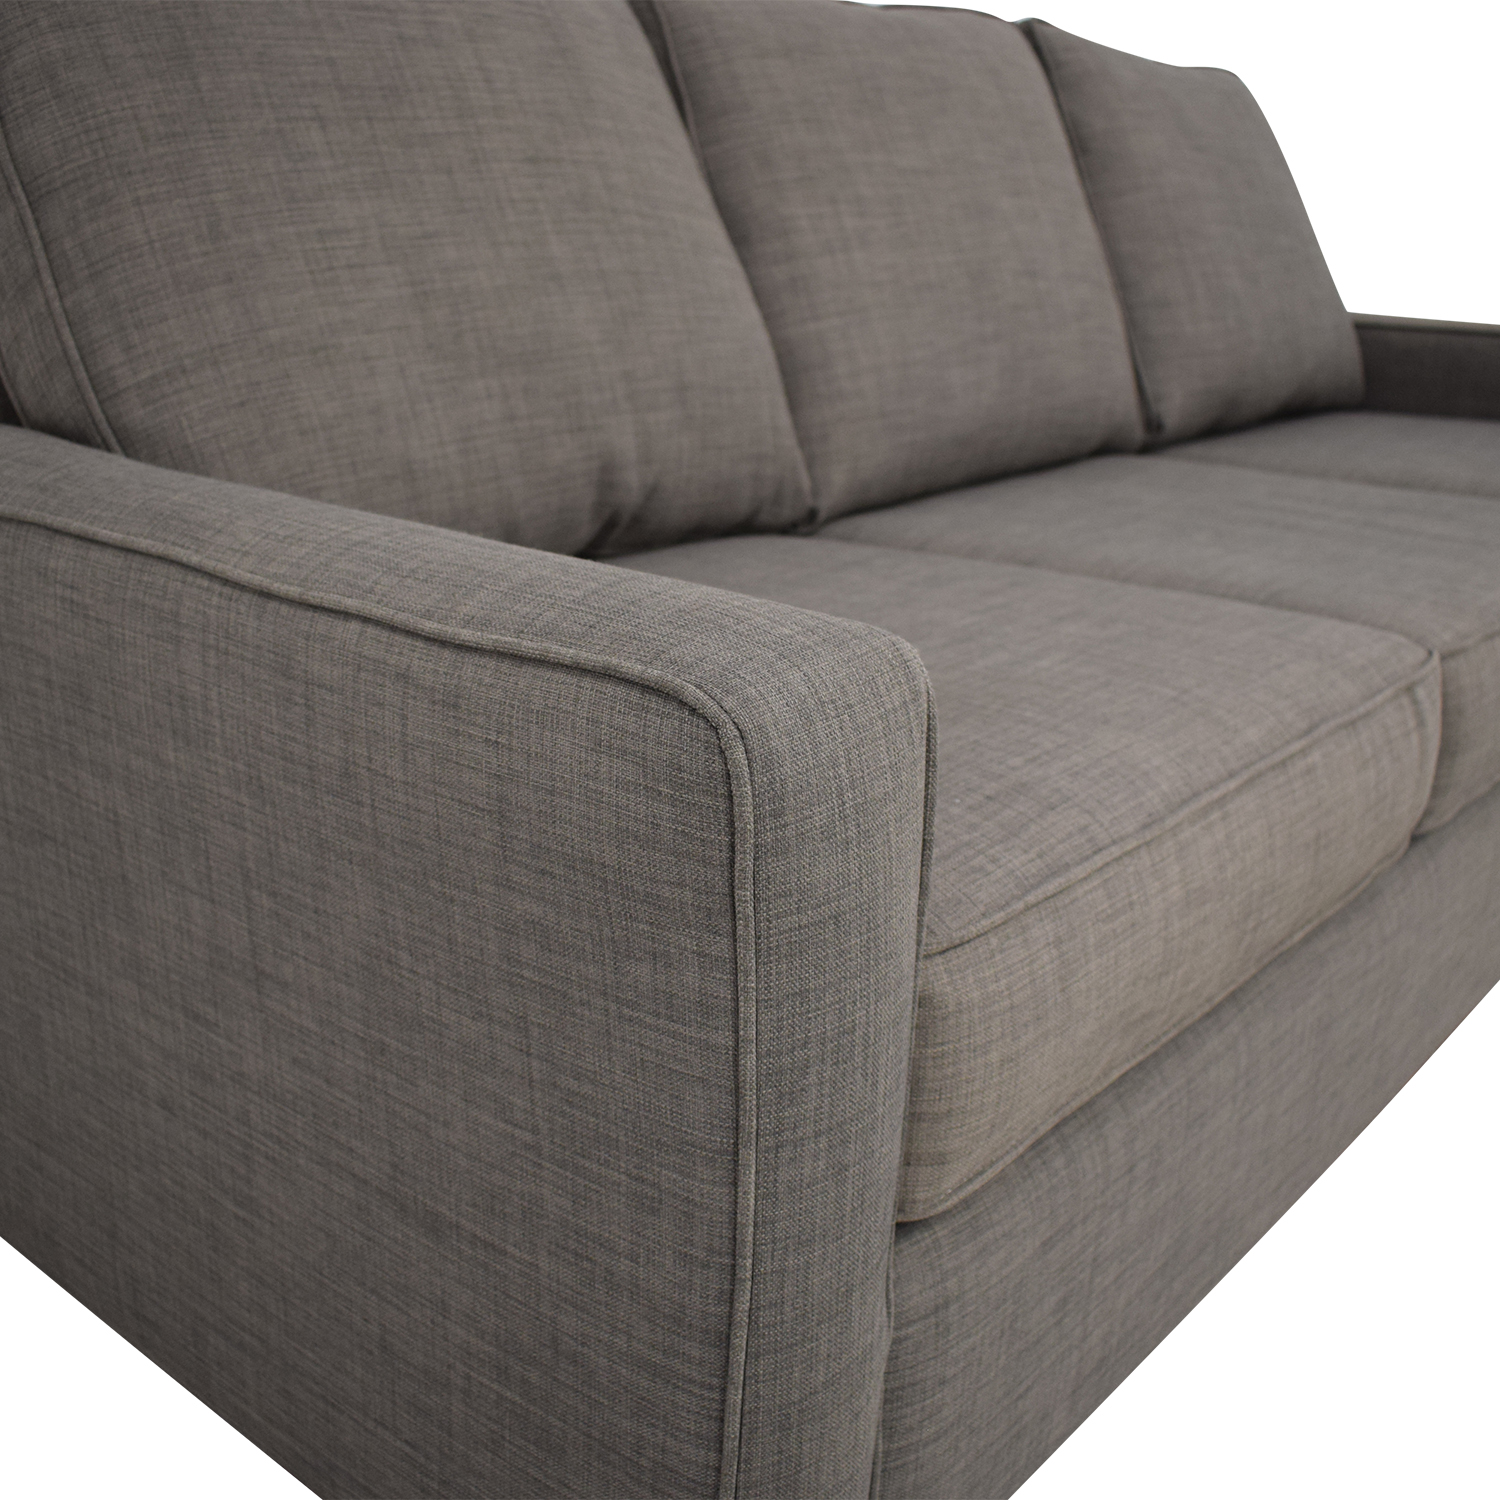 shop A1 Design Sofa